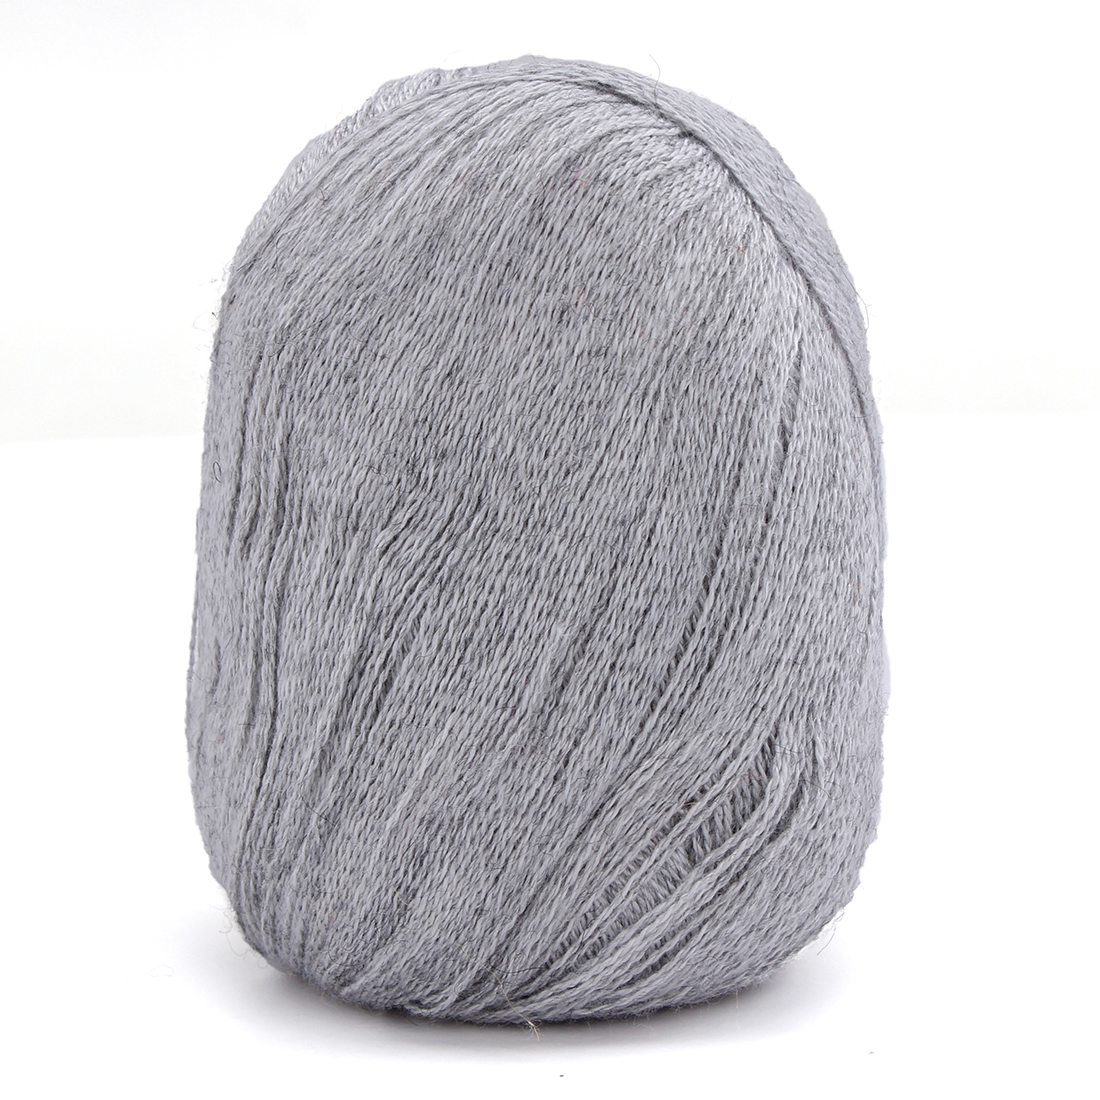 100% Cashmere Soft Knitting Weaving Wool Yarn Crocheting Colourful 50g